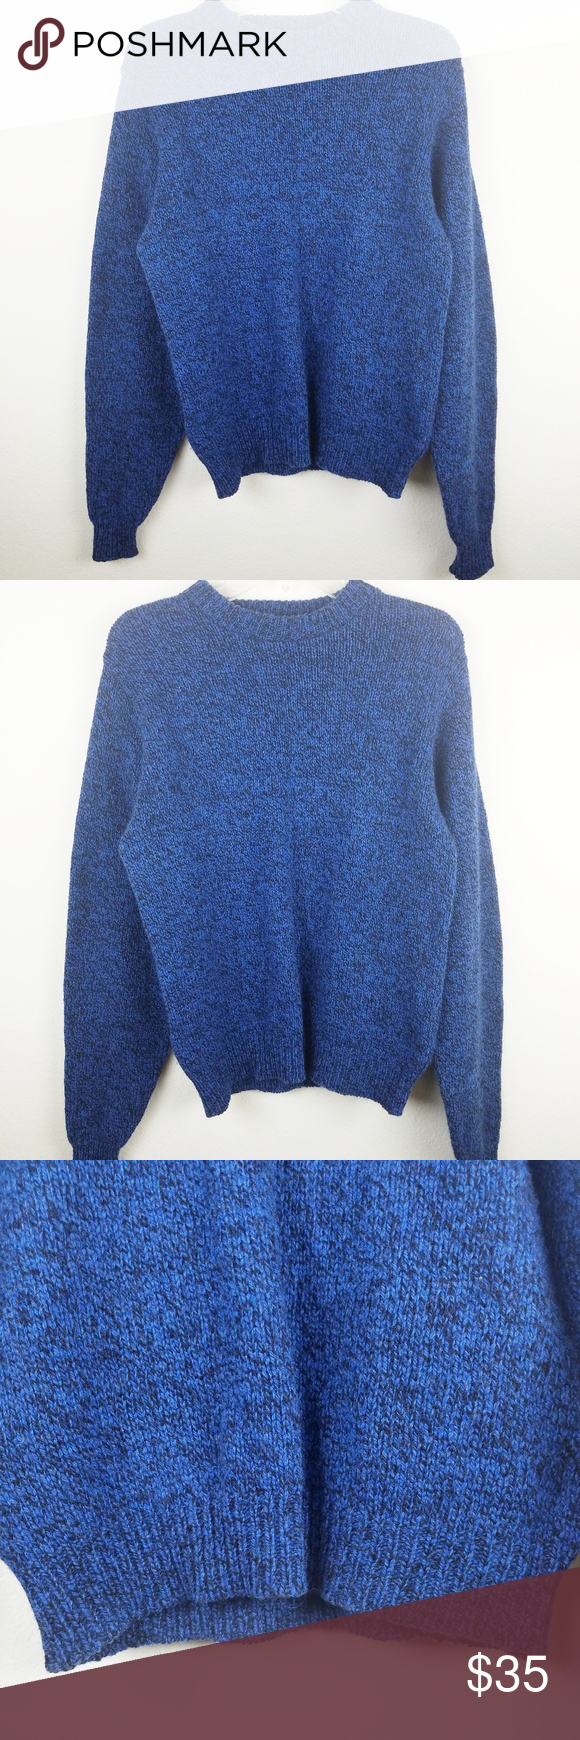 c5f74c4814a9 Lands End Wool Retro Chunky Oversized Sweater LANDS  END Women s Retro  Chunky Oversized Sweater Made